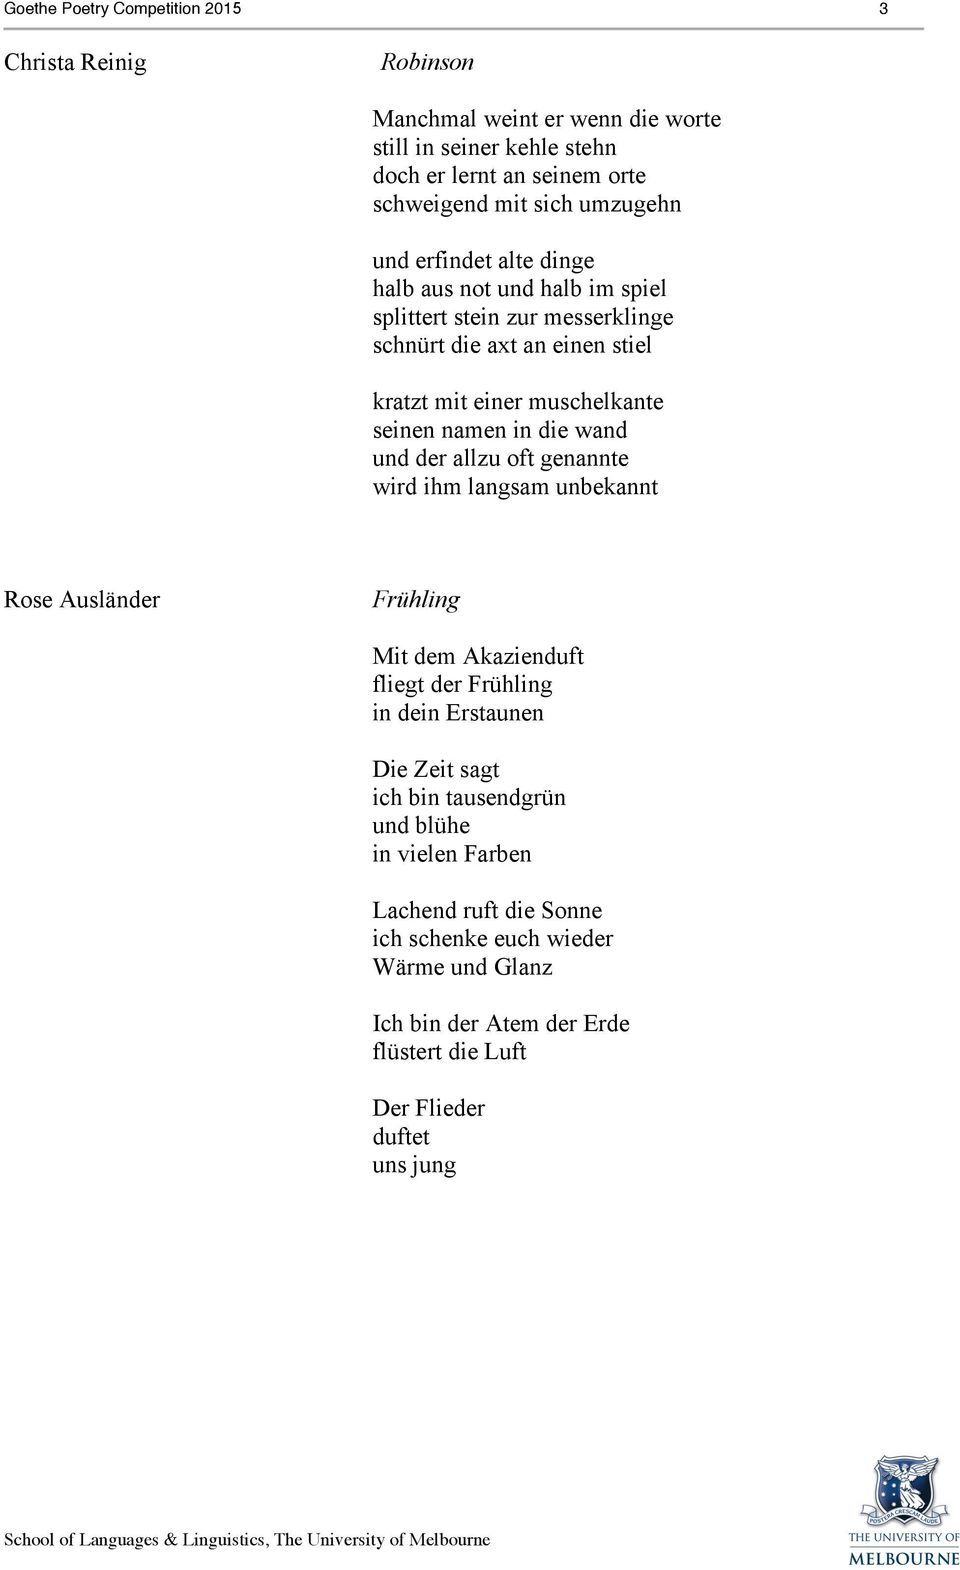 Goethe Poetry Competition Poems For Recitation Year 10